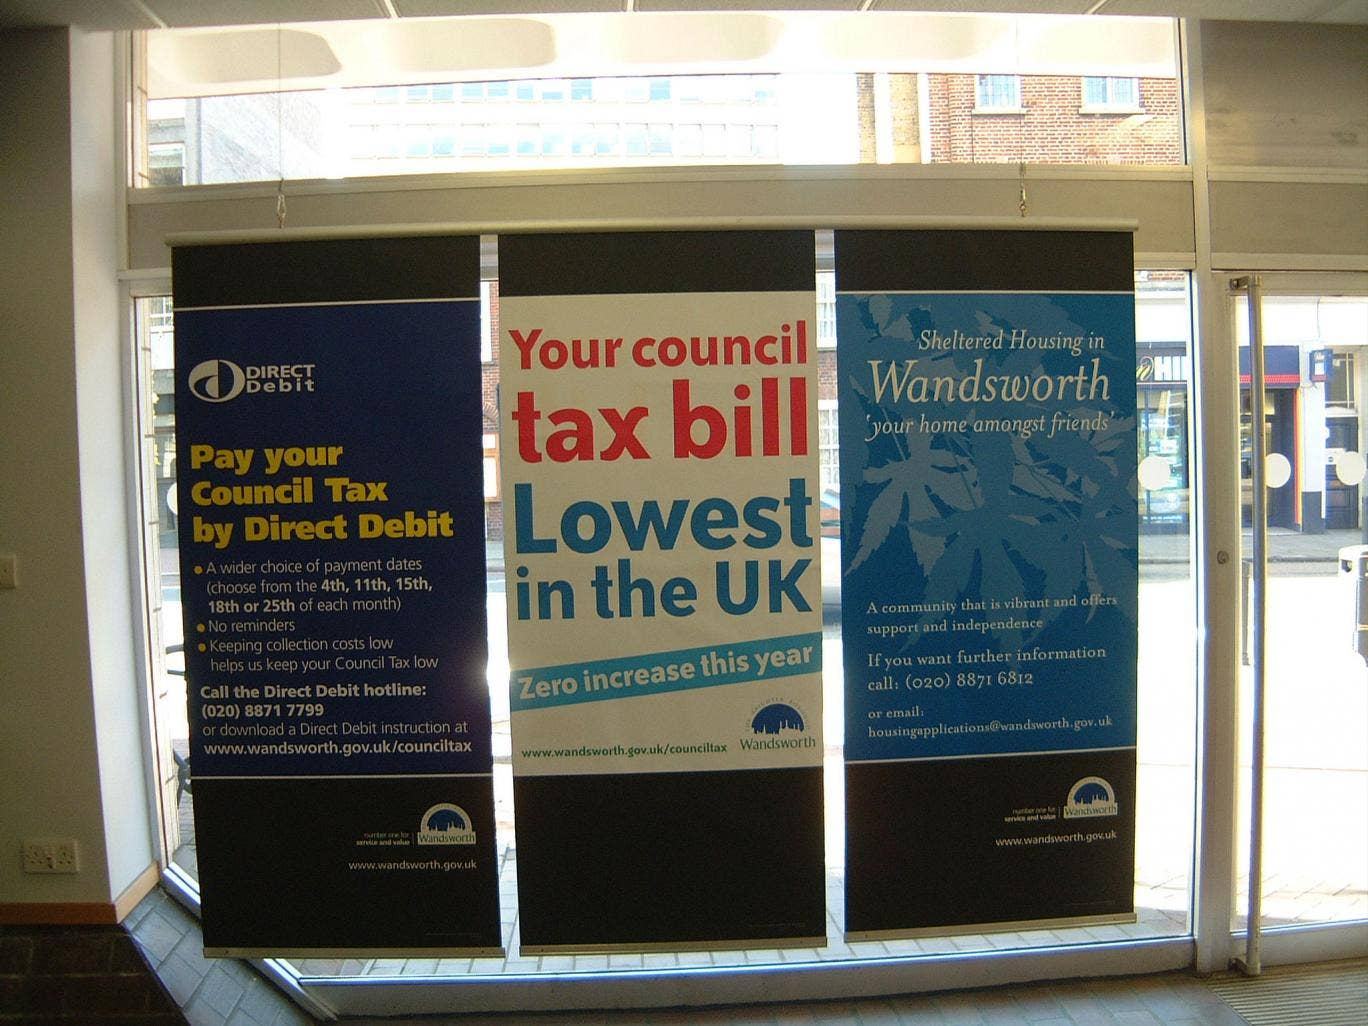 The chief executive of Wandsworth Council received £274,224 in 2012-13